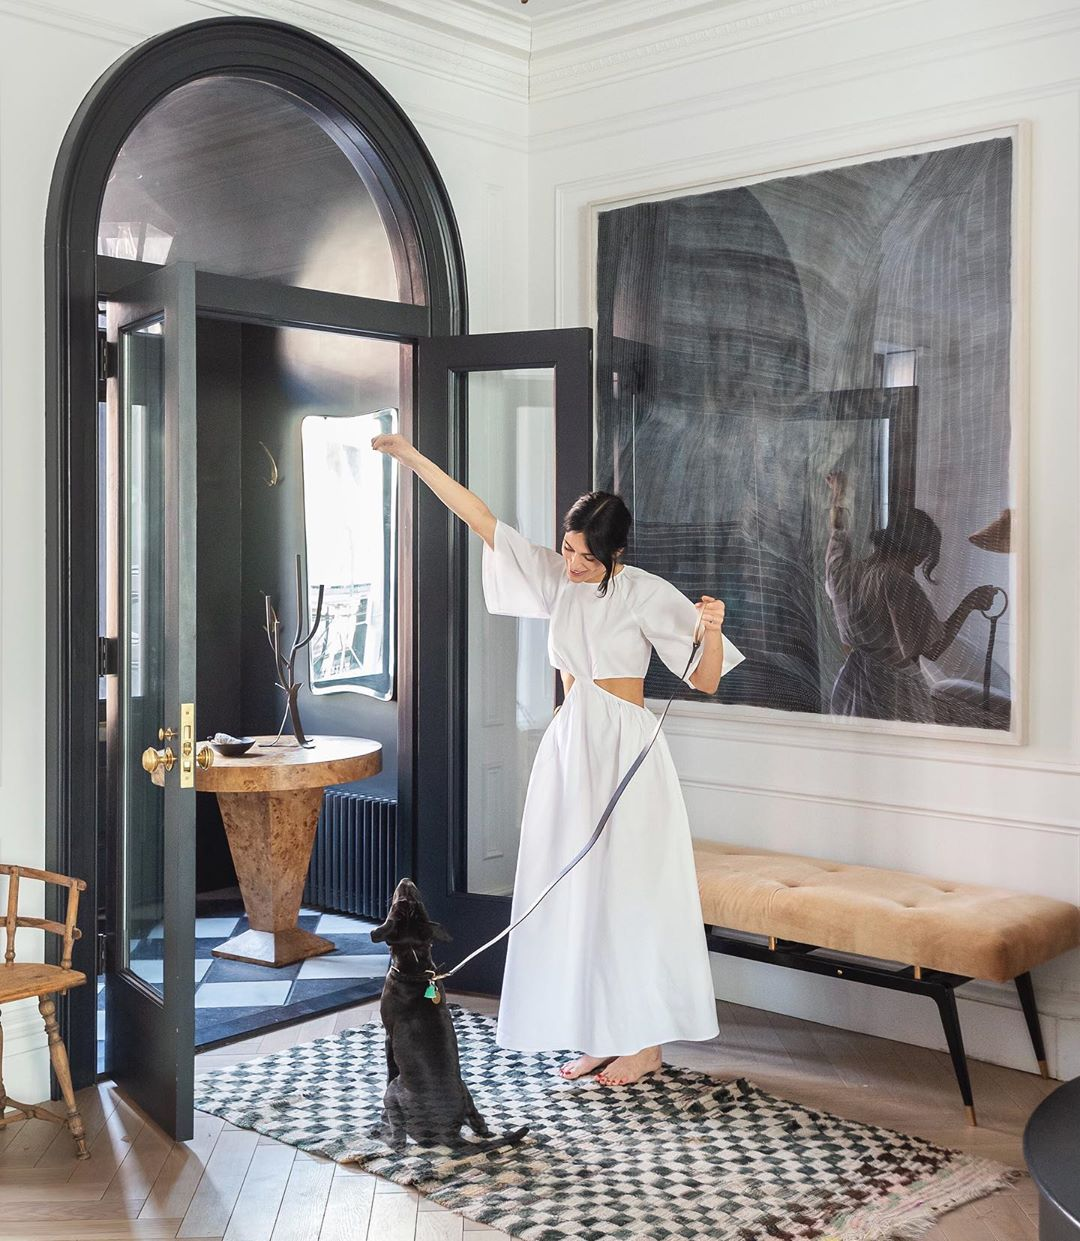 Décor Inspiration   At Home With: Athena Calderone, Cobble Hill